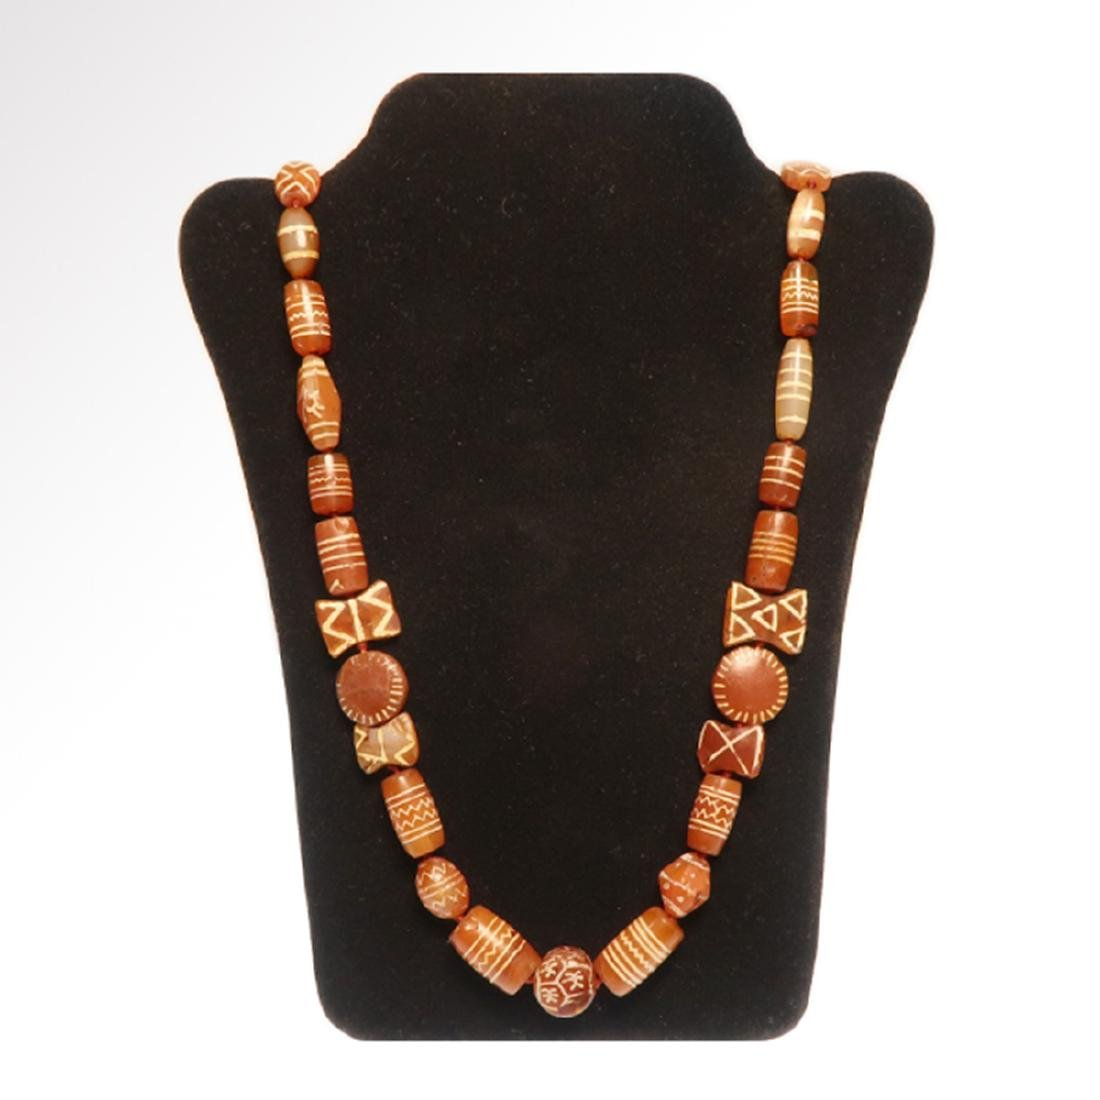 Cornelian Etched Beads Necklace, Near Eastern, 1st - 7